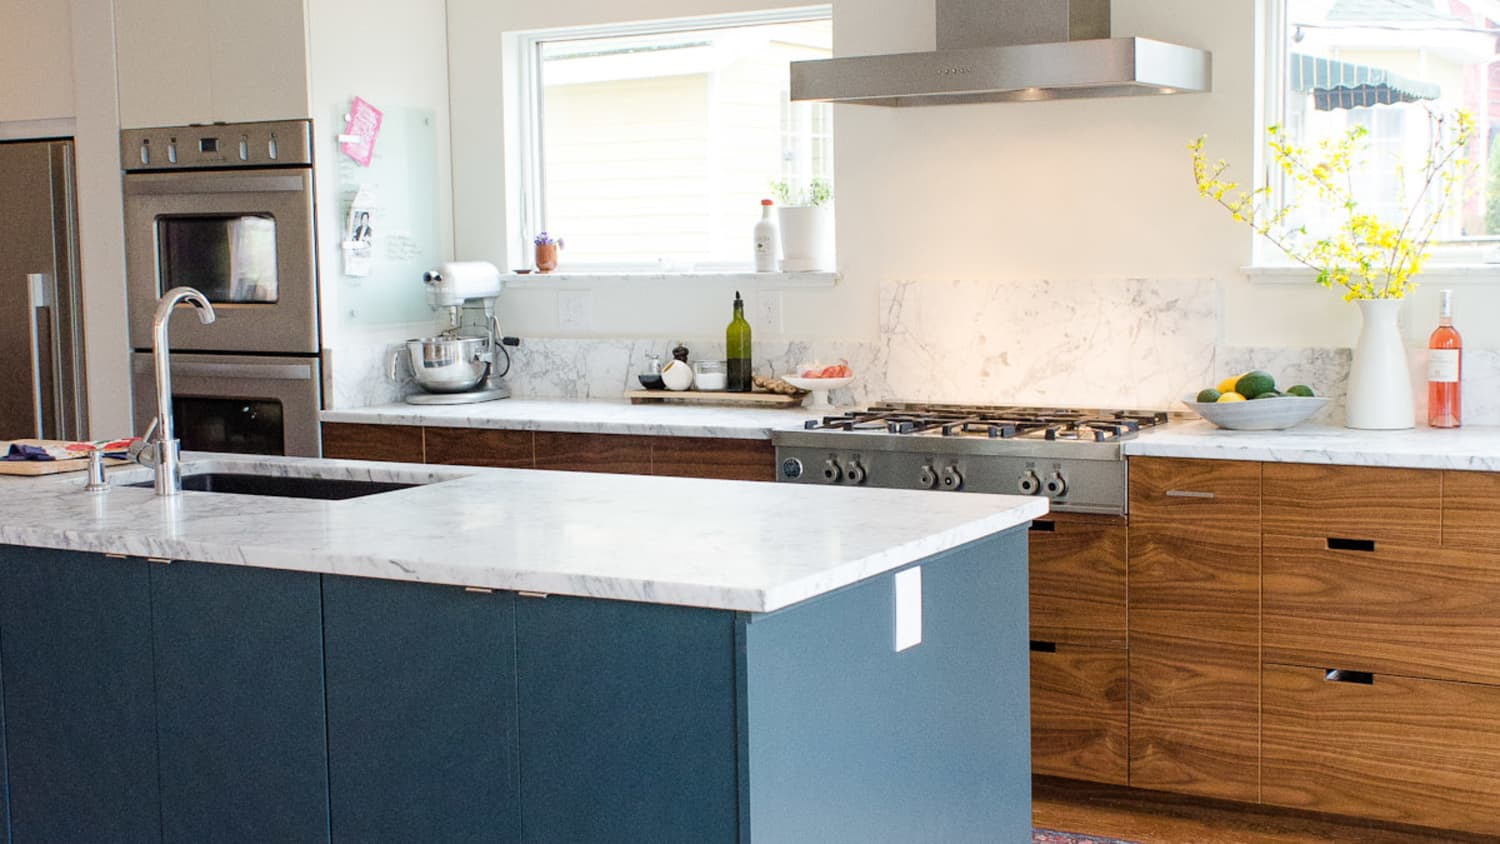 Ikea Kitchen Review Remodel Cost Cabinets Quality Kitchn